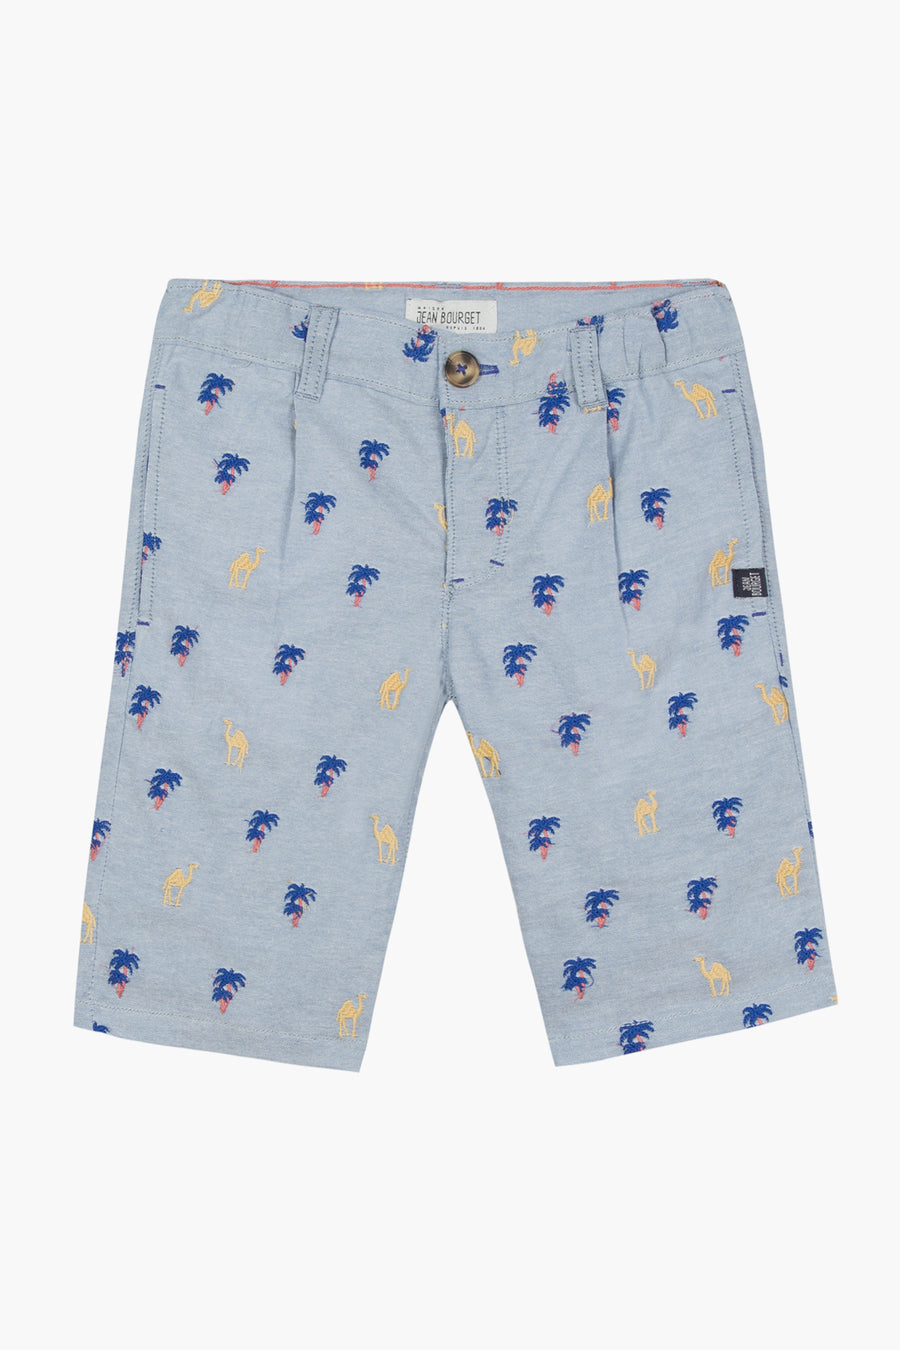 Jean Bourget Mirage Print Shorts